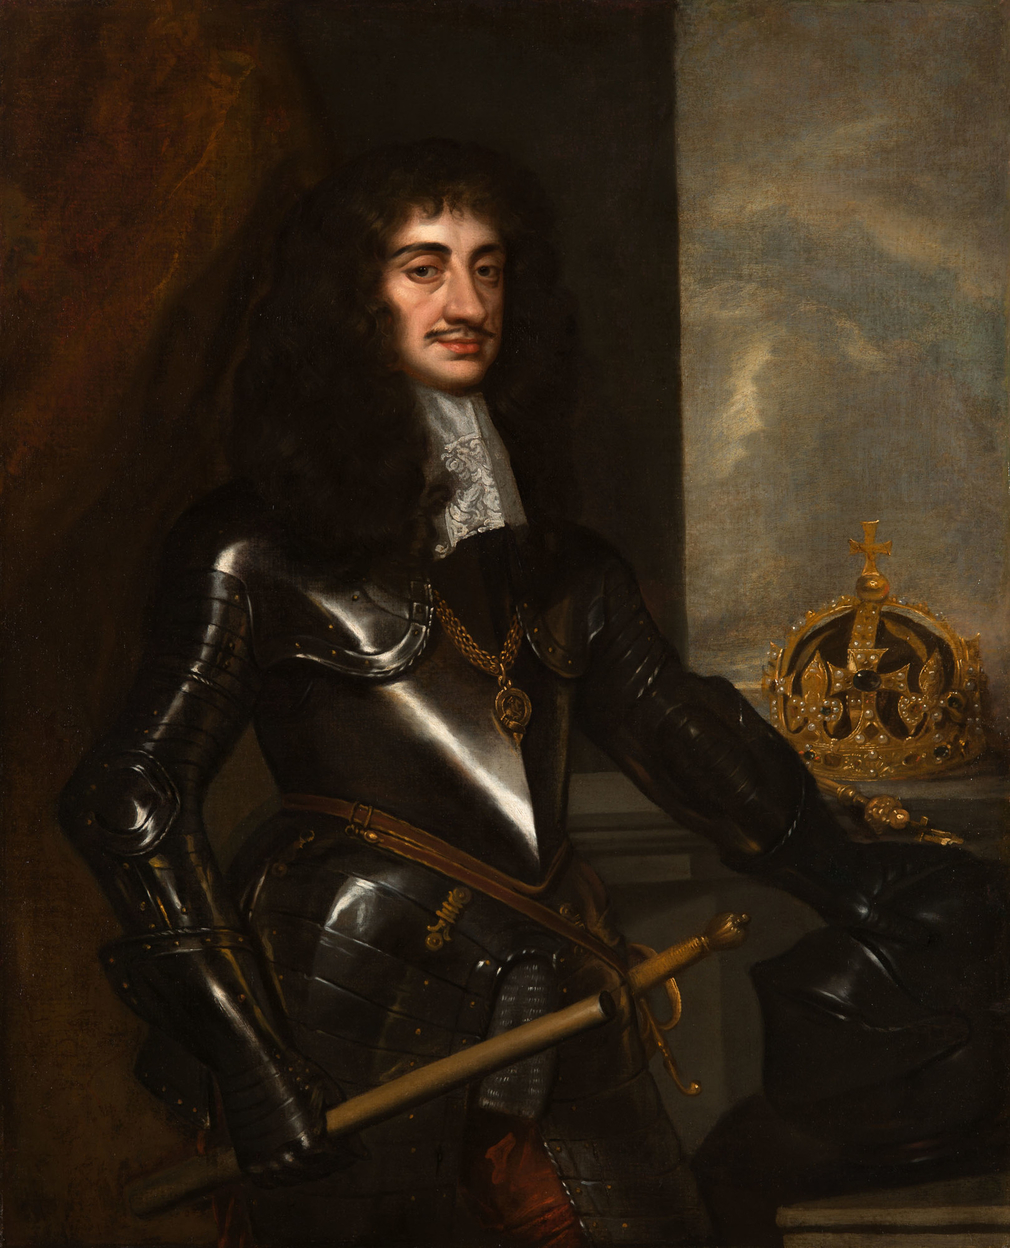 Three-quarter-length portrait of Charles II (1630-85), standing in armour, wearing the chain of the Garter, holding a baton in his right hand, and resting his left hand on a helmet below the crown and sceptre. The canvas appears to have been left unfinish